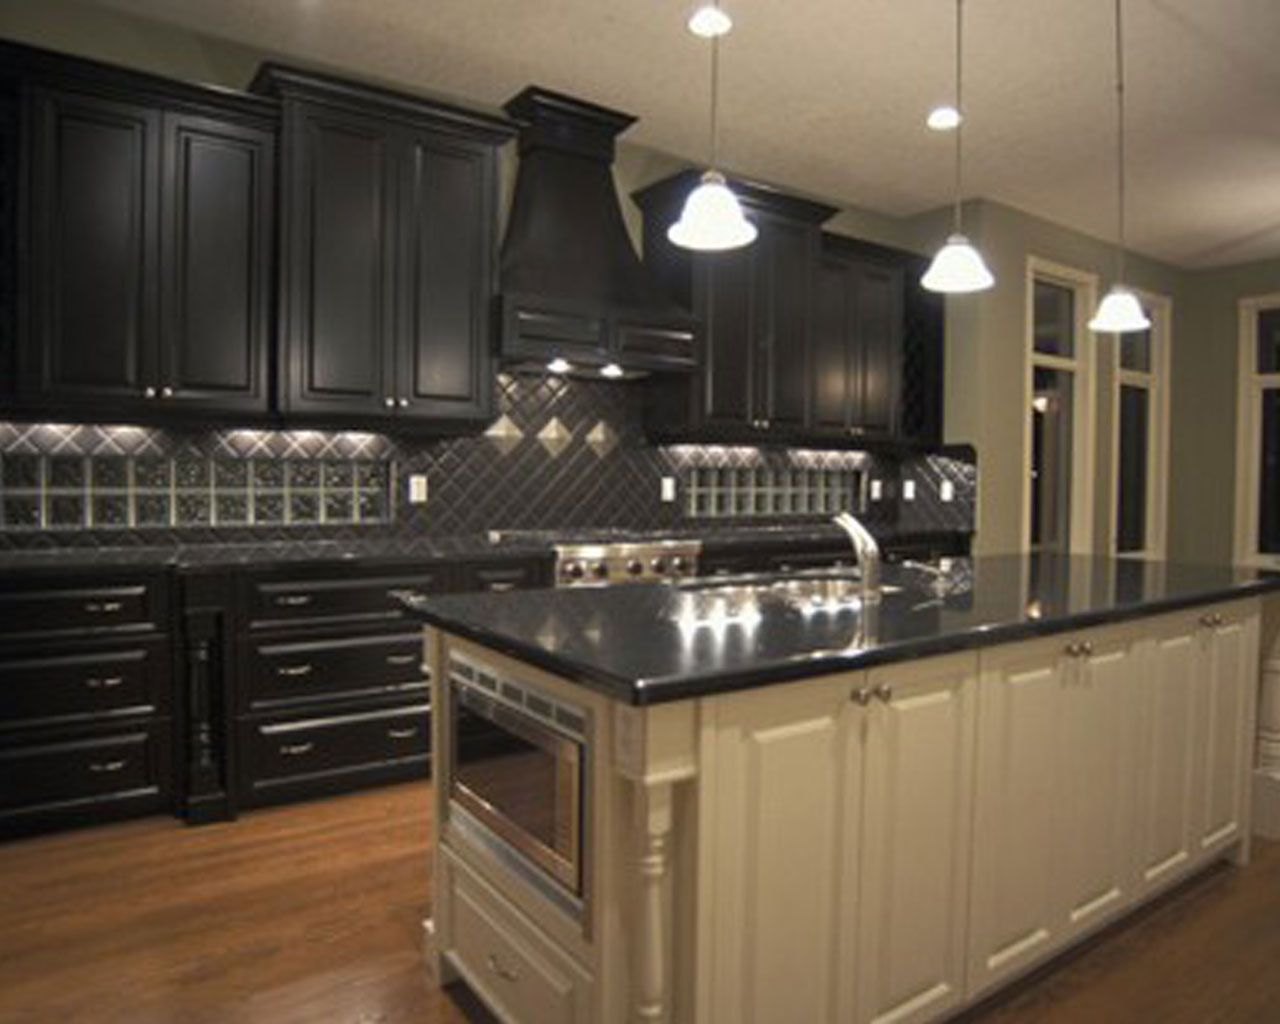 Finest design black kitchen cabinets wallpapers new for Small dark kitchen ideas